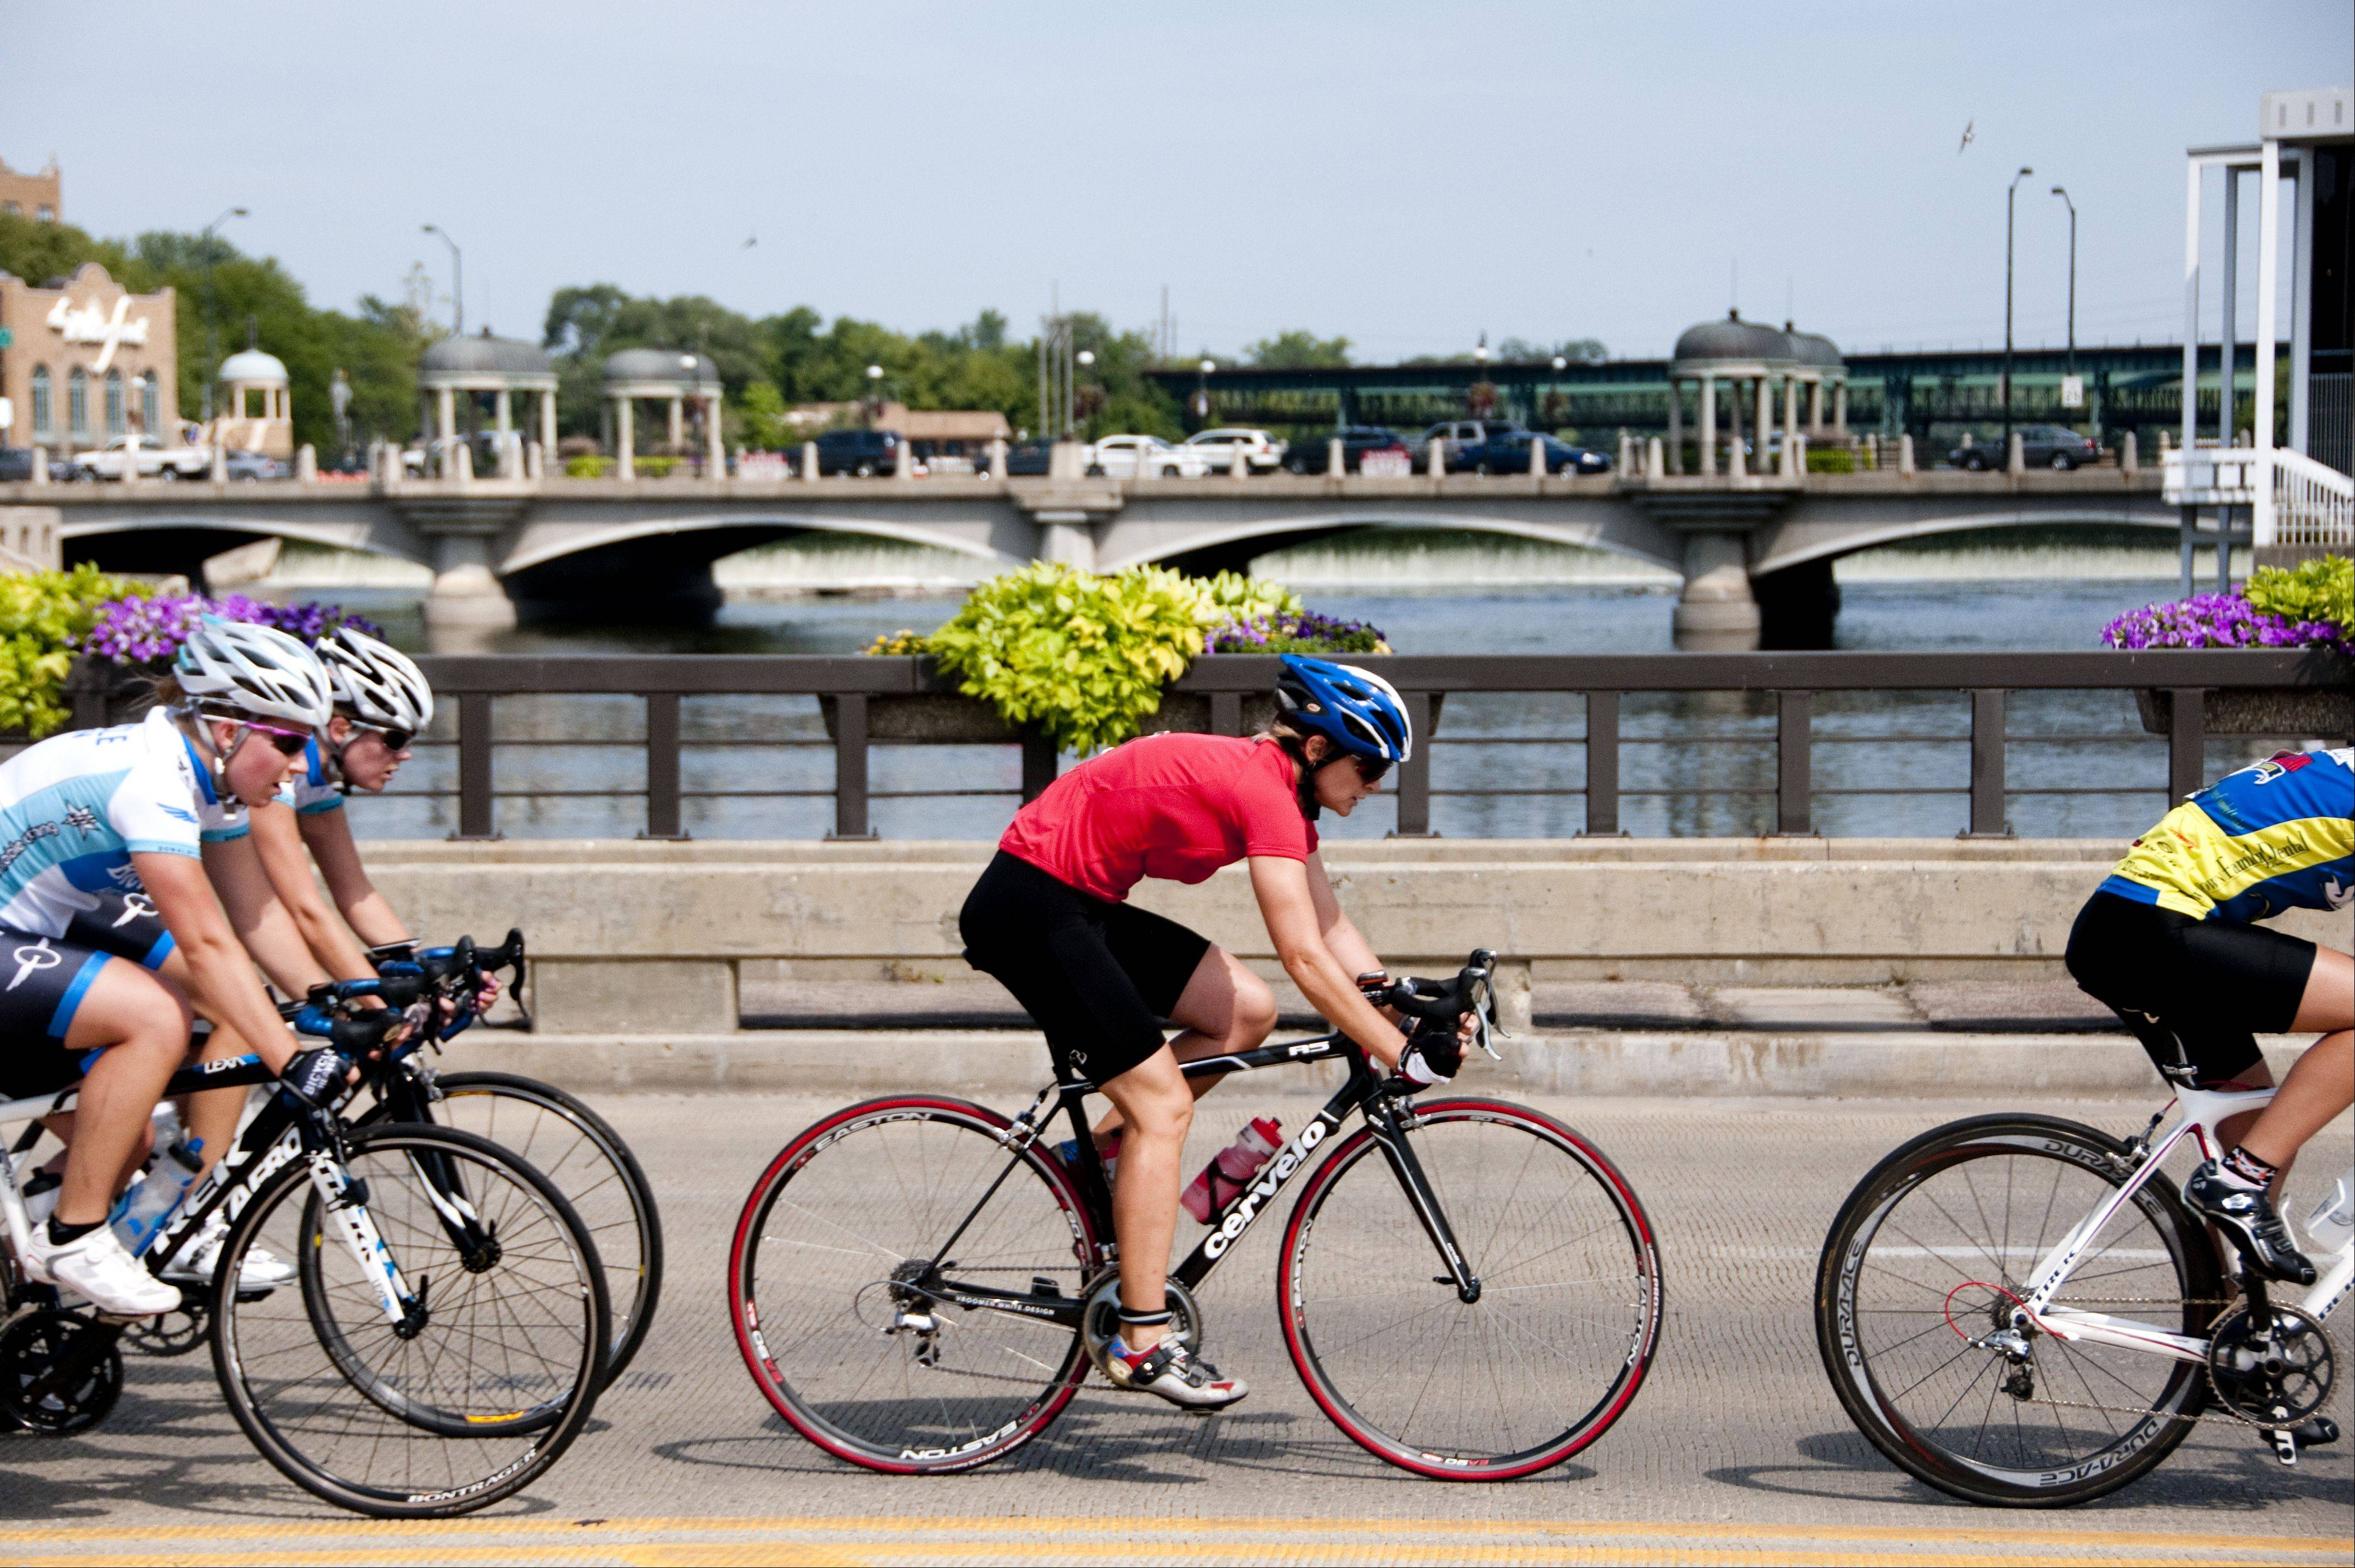 Competitors in the women's category 3/4 of the Sammy's St. Charles Prairie State Criterium race across the Fox River Sunday in downtown St. Charles. The race began and ended at Sammy's Bike Shop using 1st Street, Illinois Avenue and Riverside Avenue as the course.